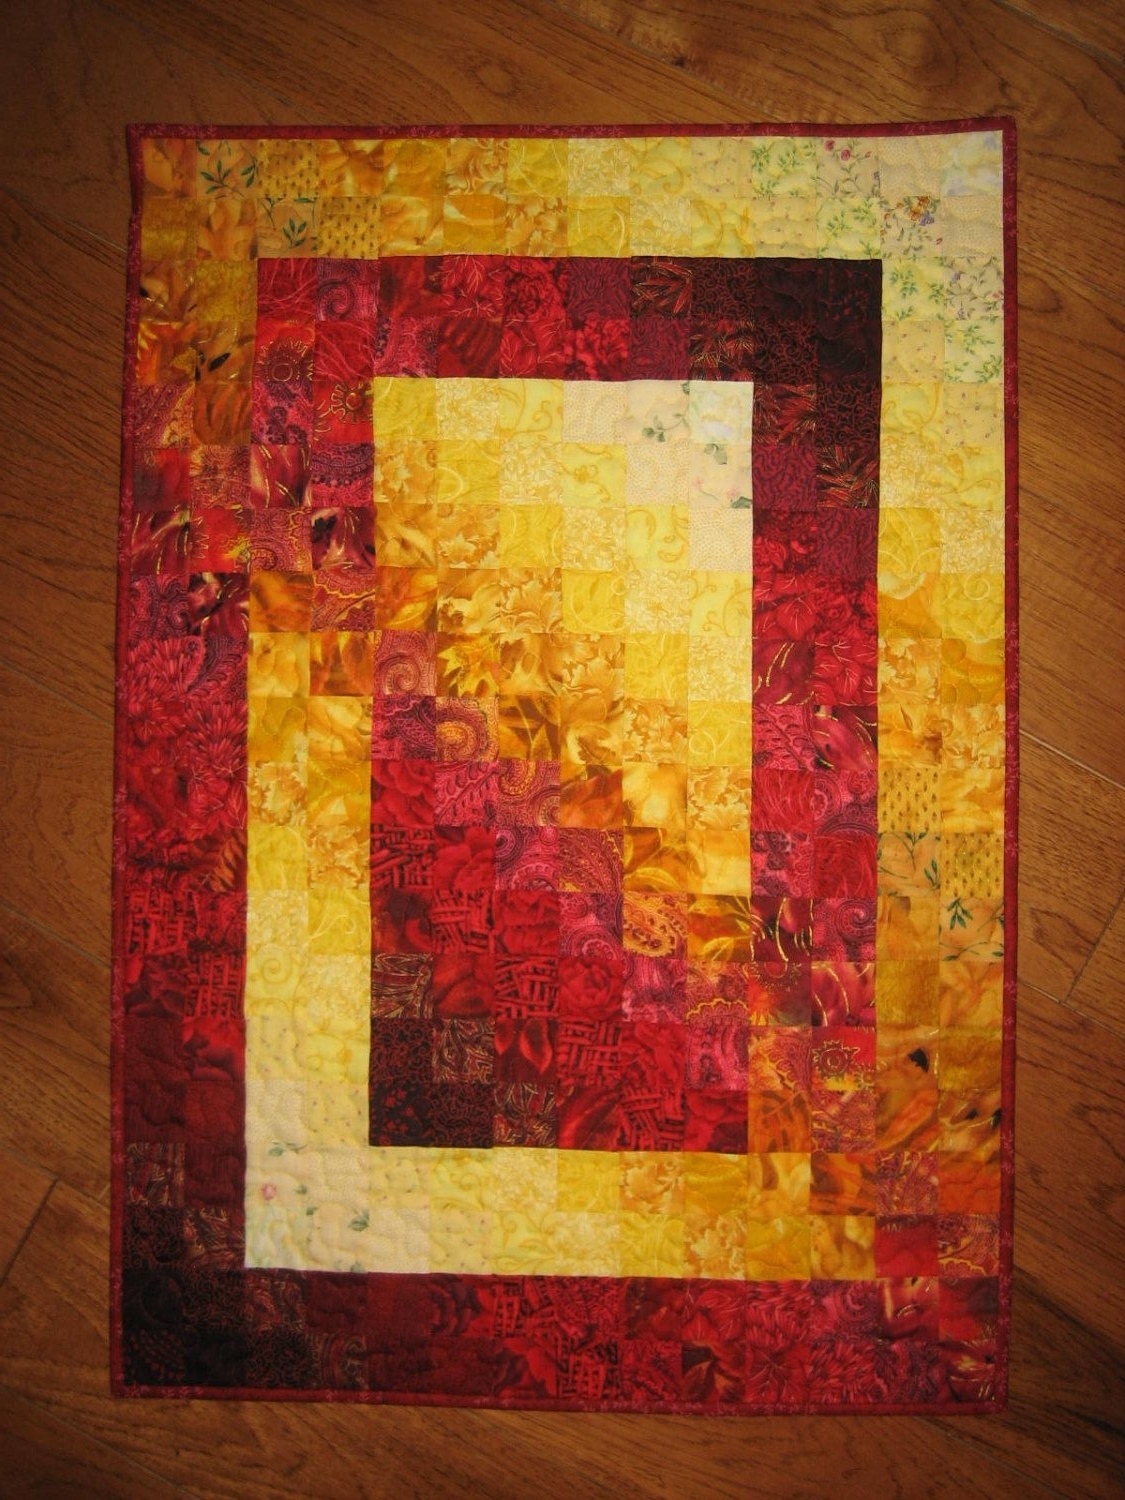 Quilt Fabric Wall Art Intended For 2017 Art Quilt, Fire Red Yellow Orange Fabric Wall Hanging Abstract (Gallery 1 of 15)